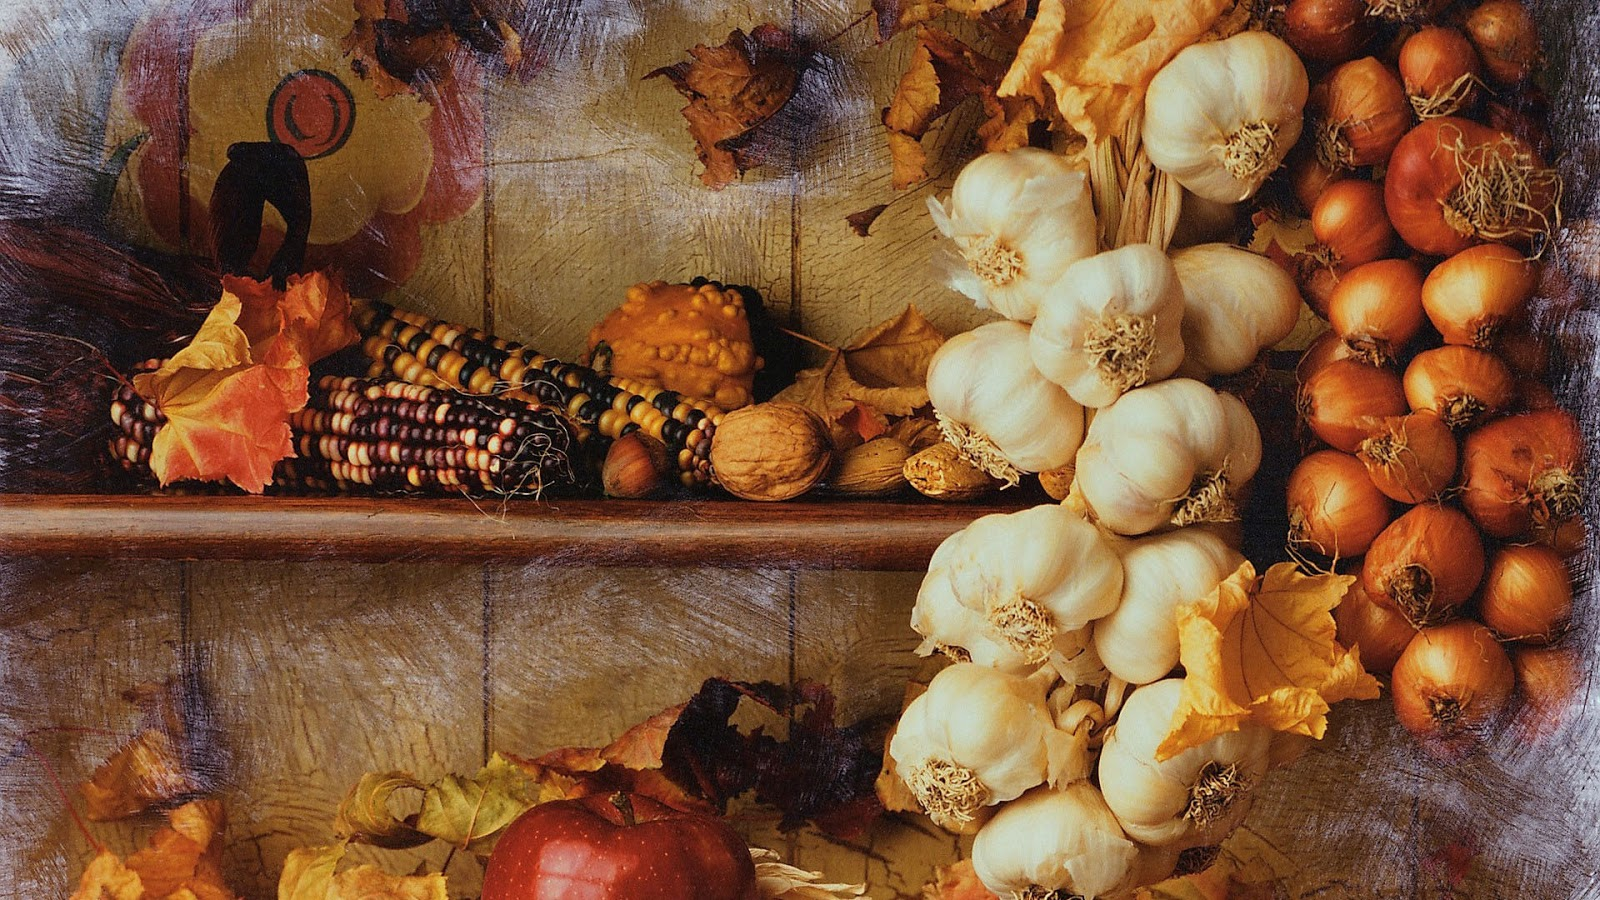 Autumn Harvest Desktop Wallpapers1 Wallpapers